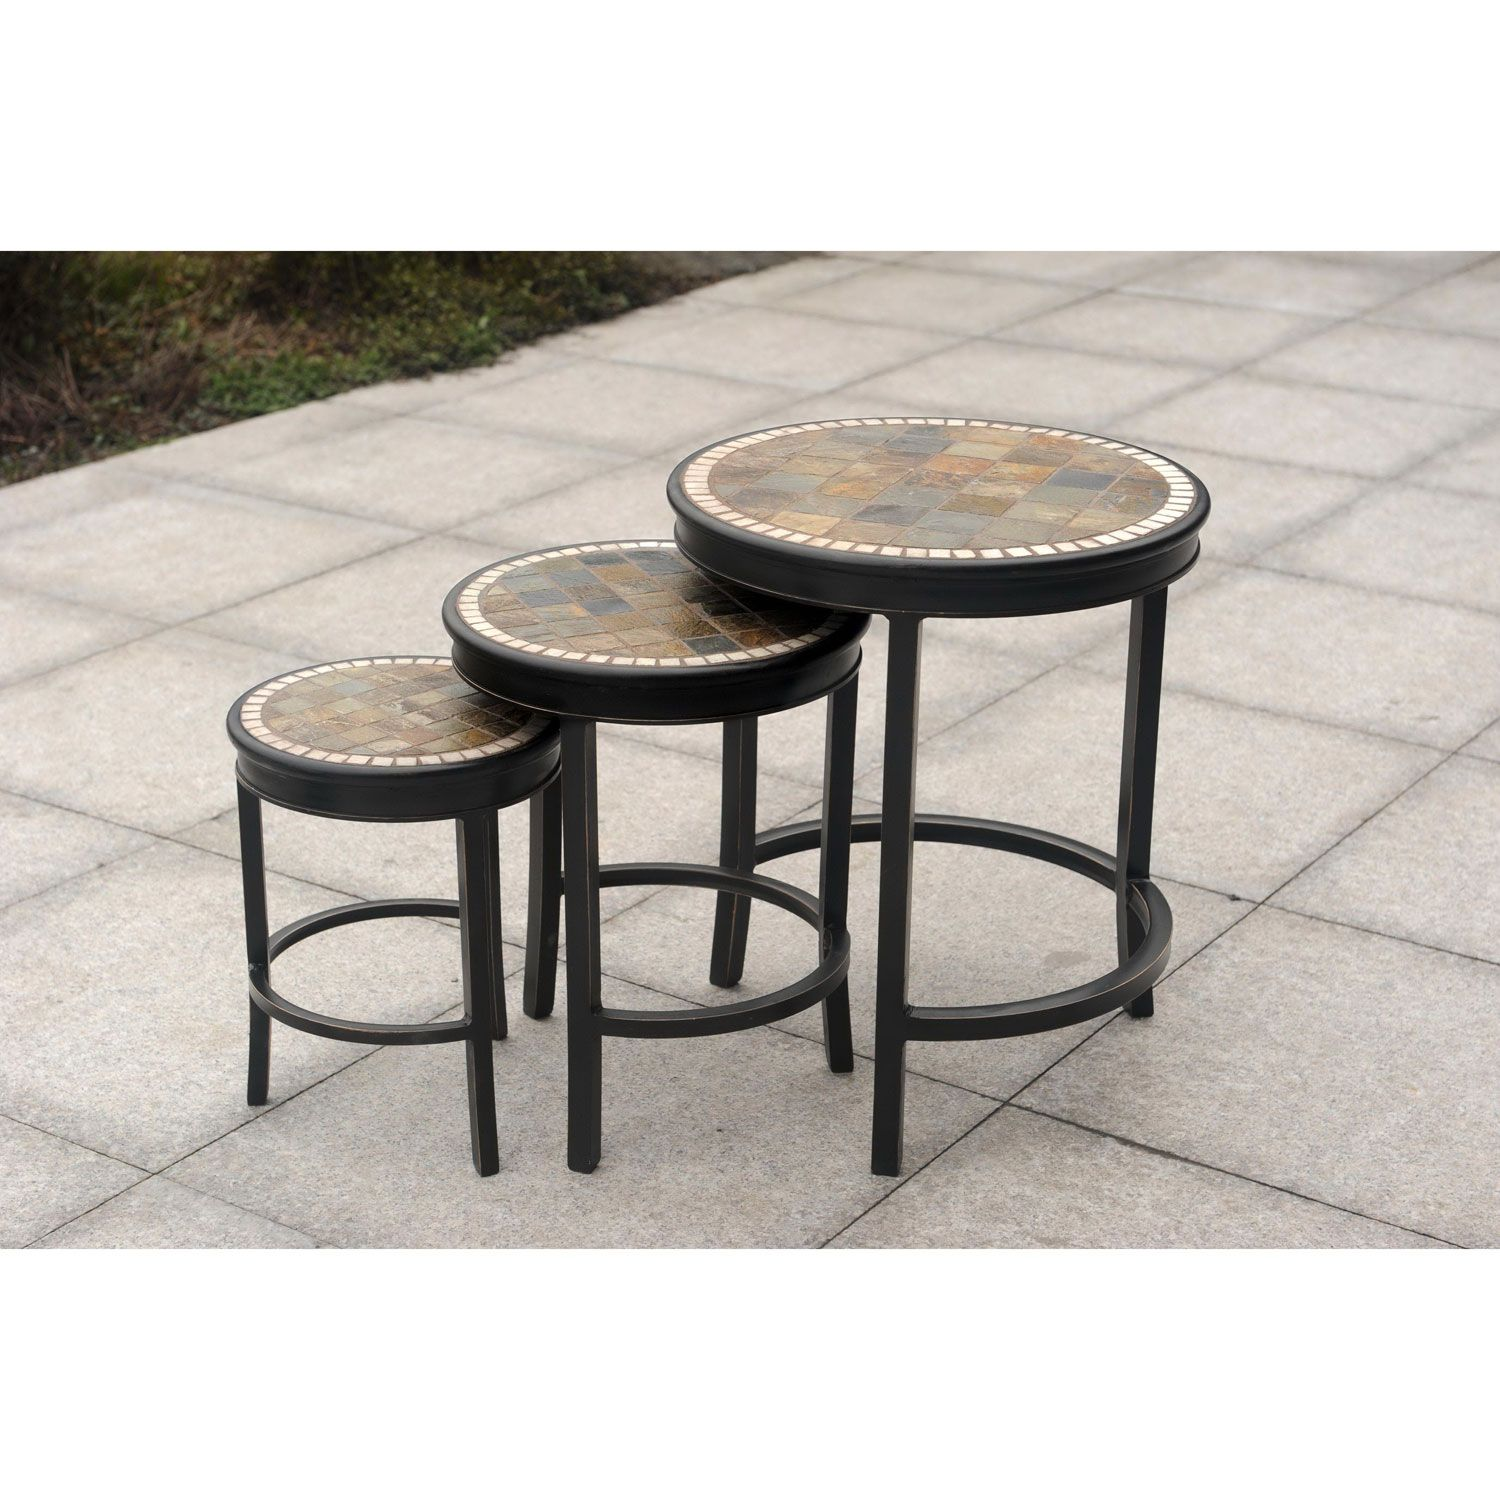 lovely patio accent table design uttermost tables outdoor rectangular side slim console with drawers round linen tablecloth lamp usb port drum throne top small cloth metal trestle